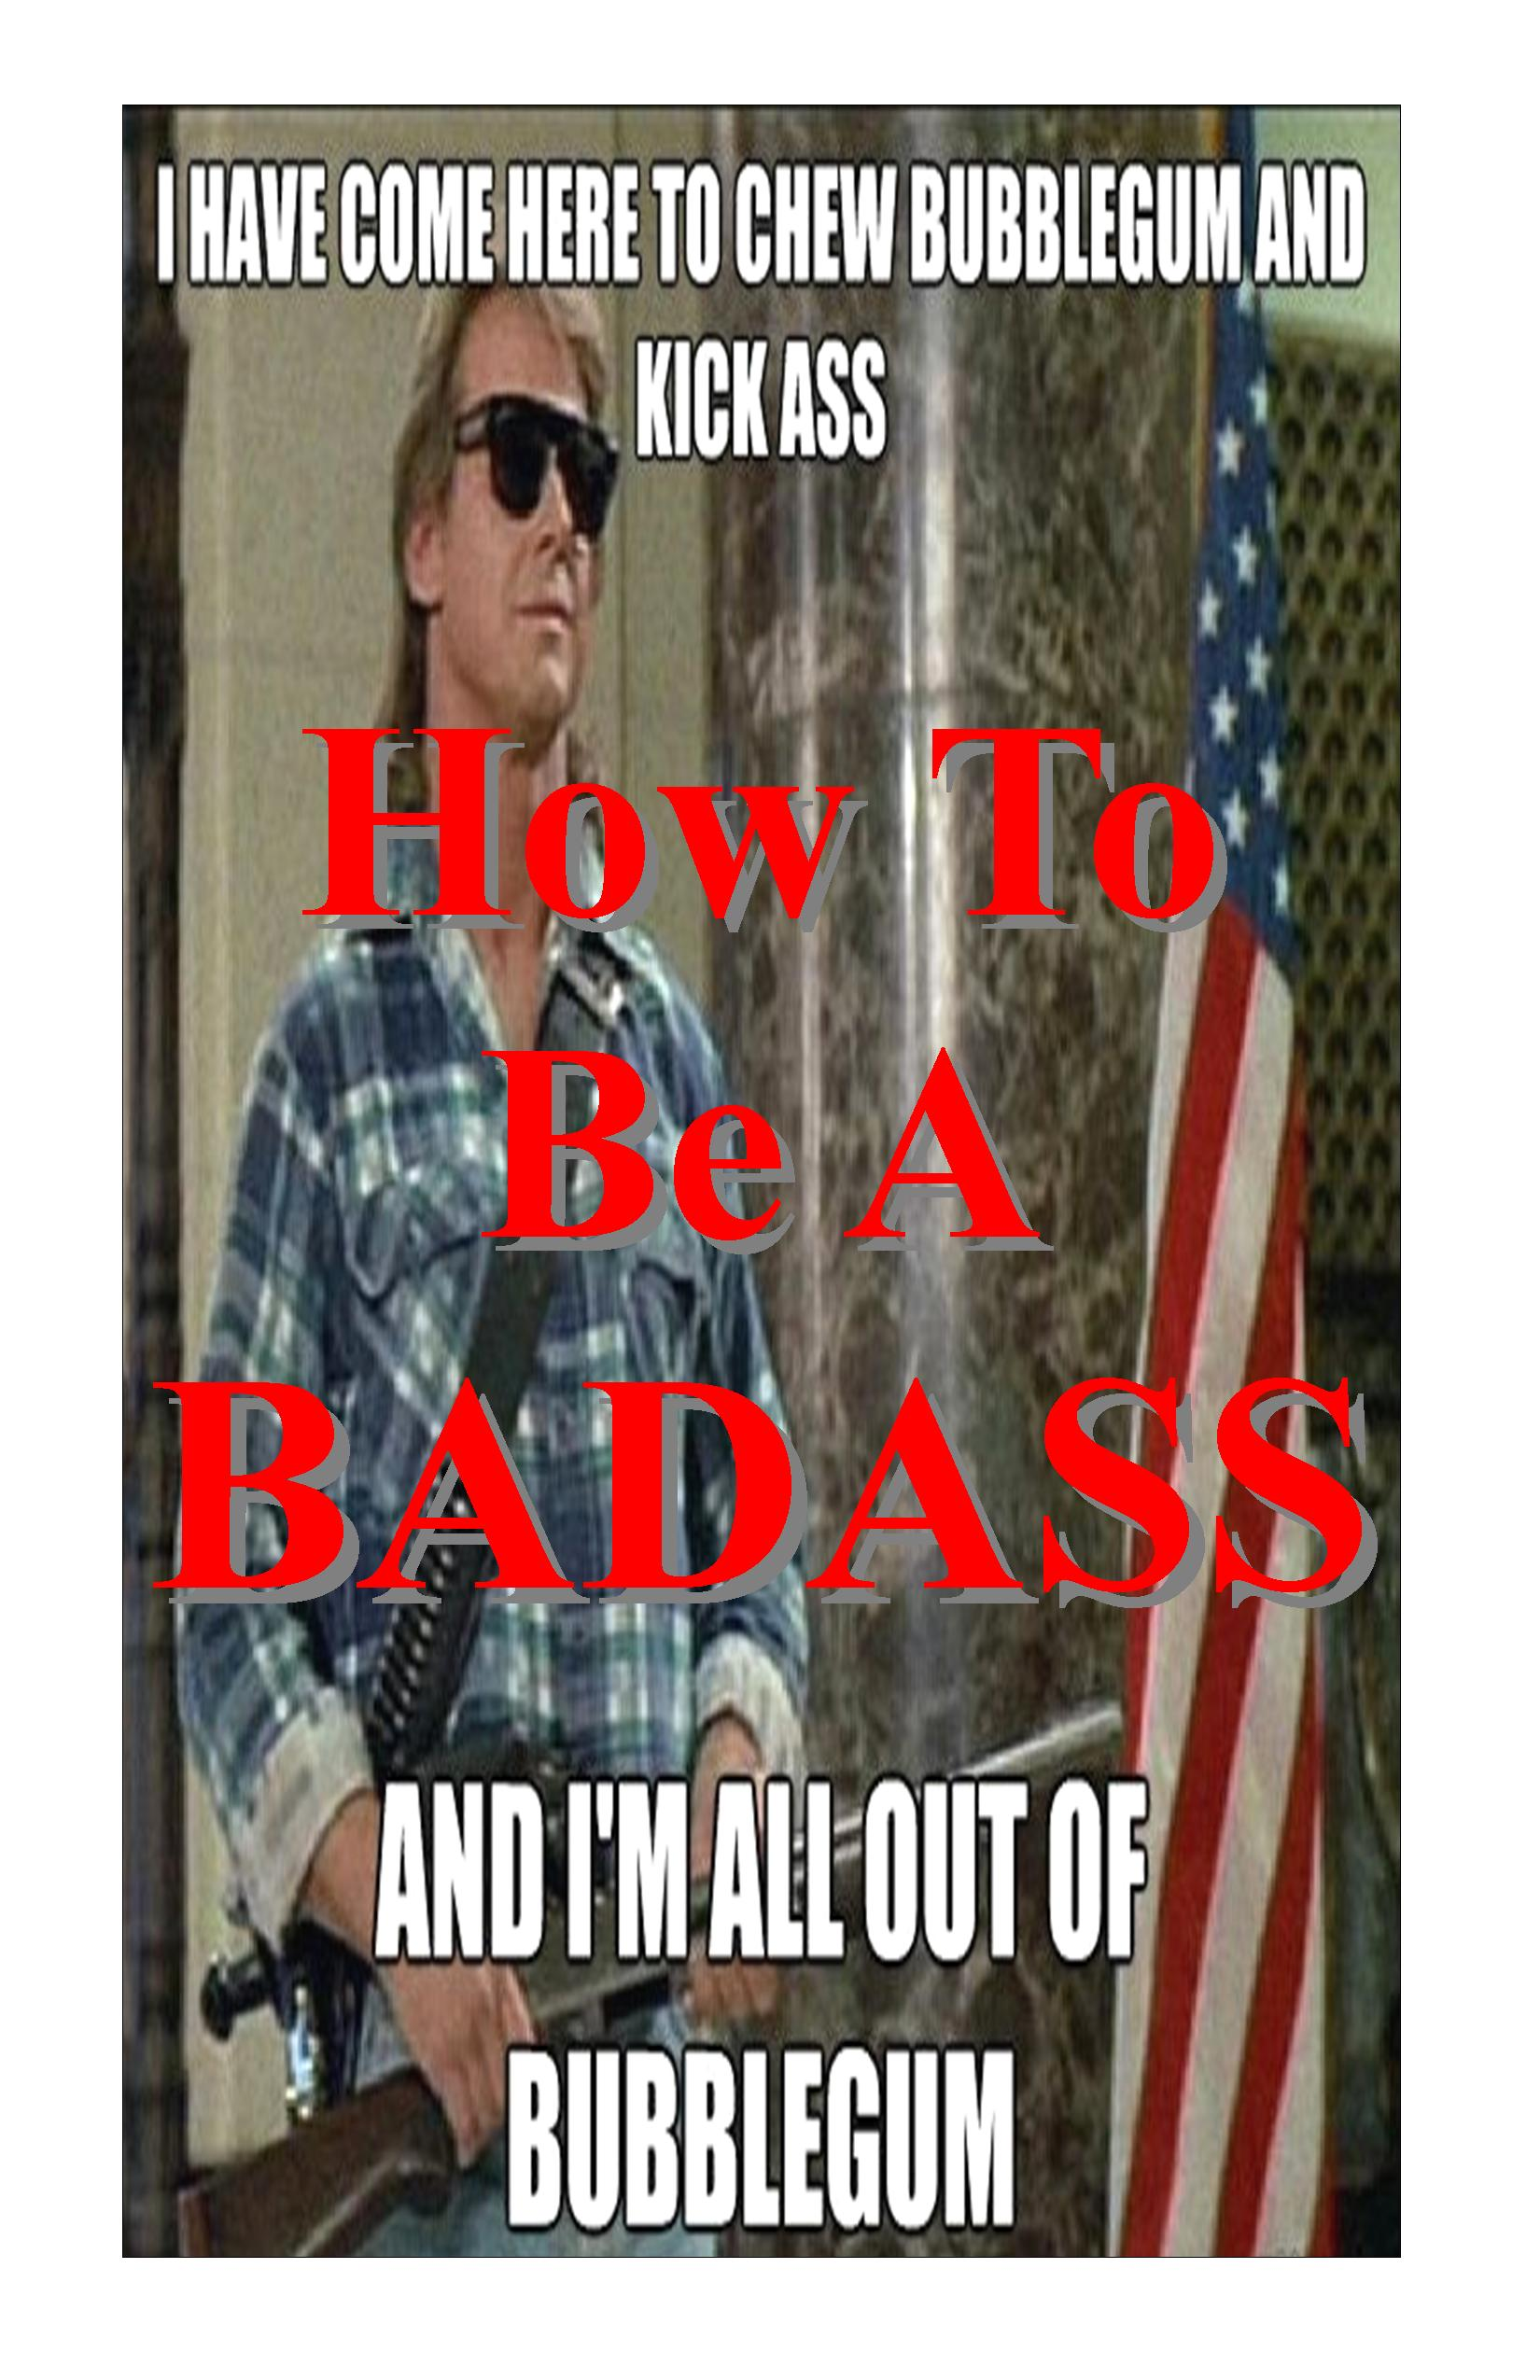 HOW TO BE A BADASS!